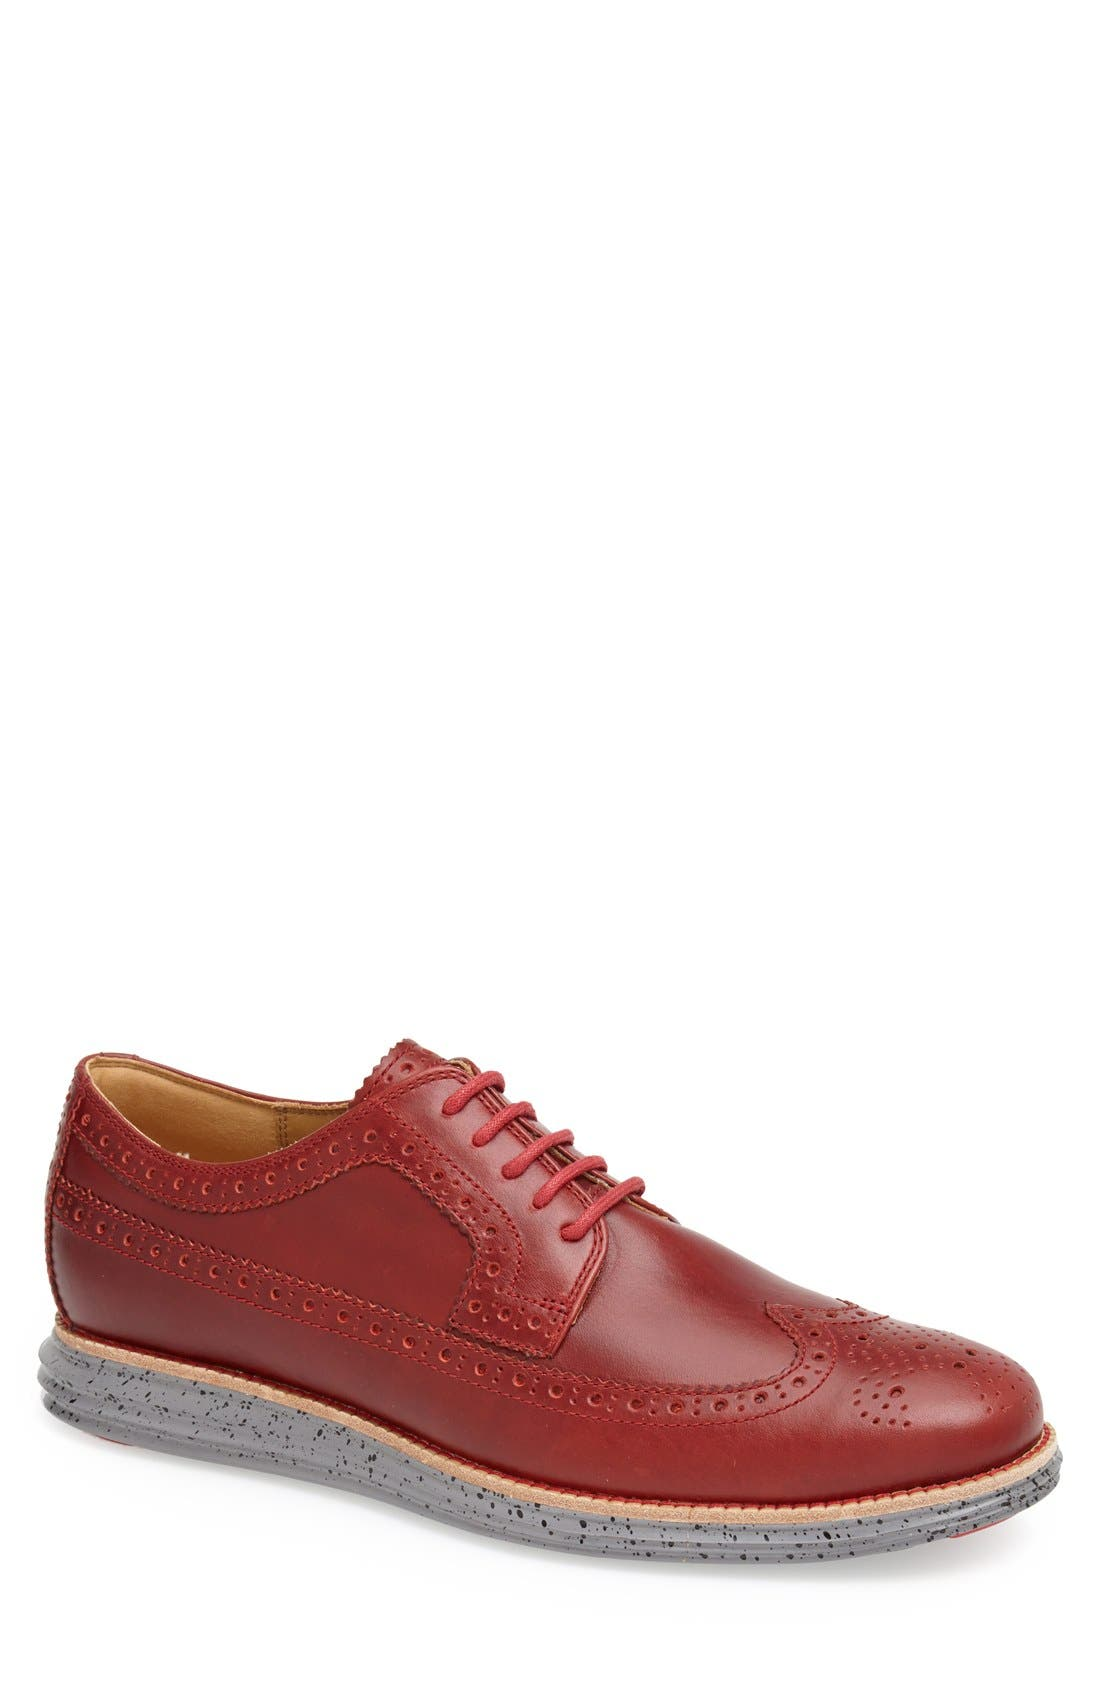 Main Image - Cole Haan 'LunarGrand' Longwing Derby (Men) (Nordstrom Exclusive)